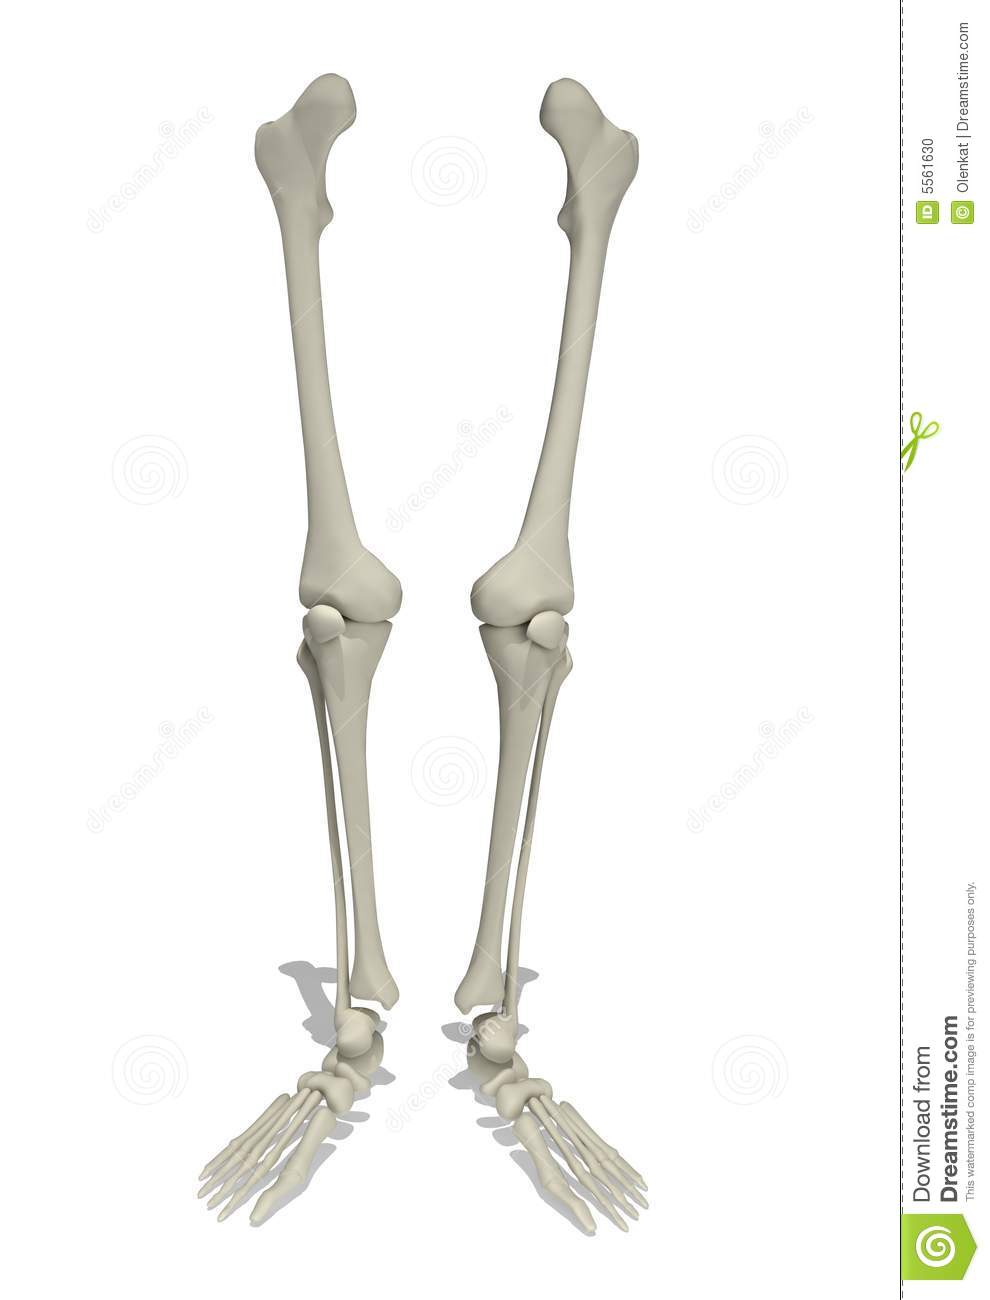 Anatomical Model Of Human Legs Stock Illustration Illustration Of